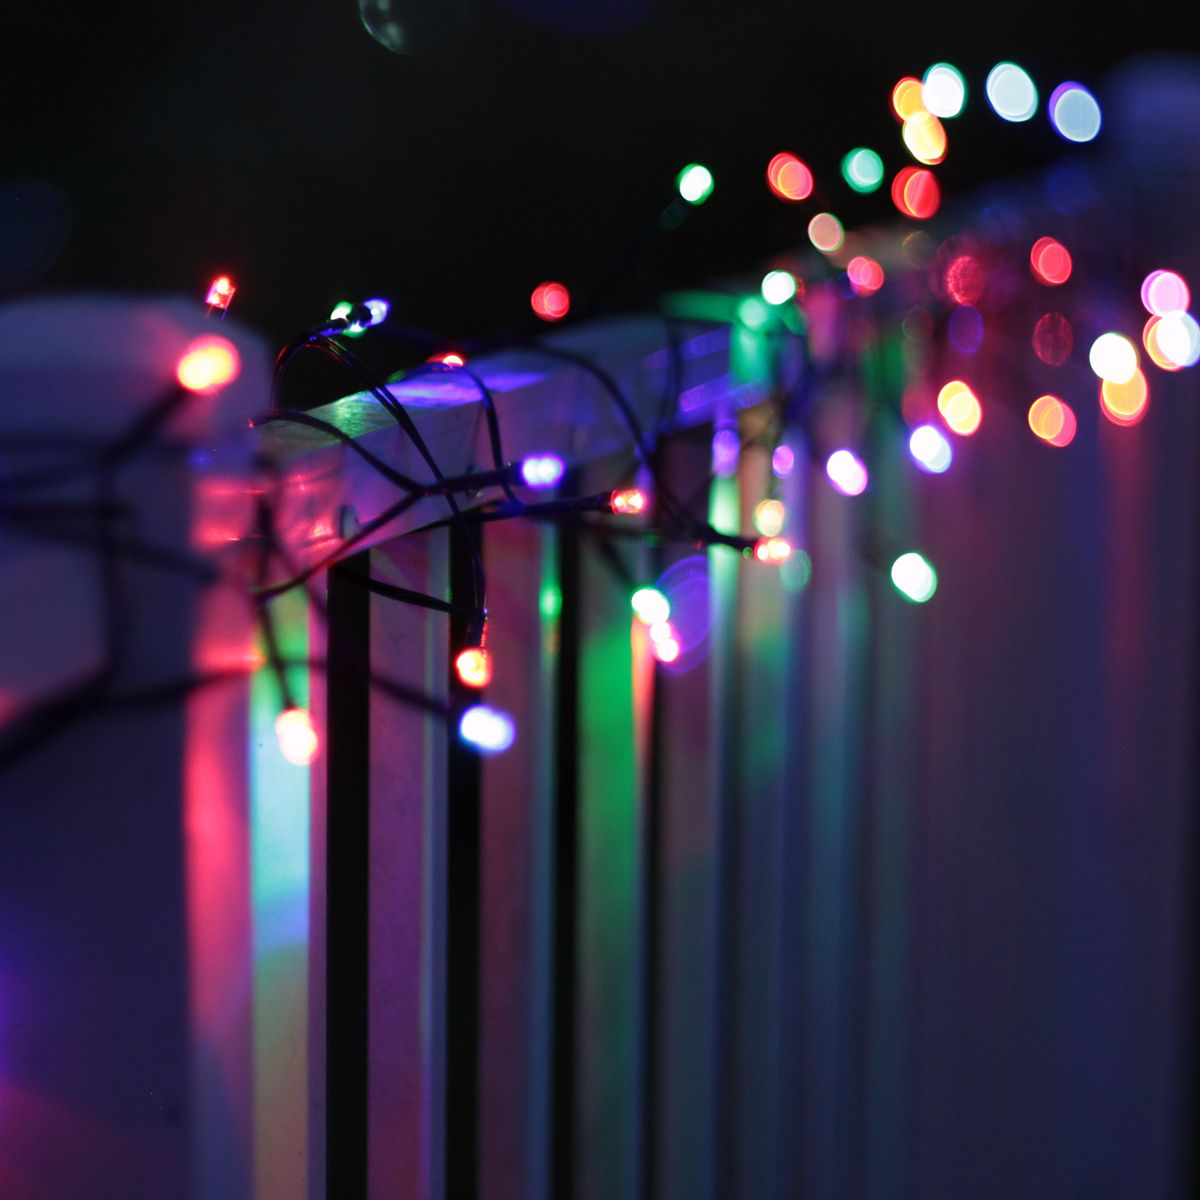 SOLAscape's Color-Changing Solar String Lights (50 LED bulbs on a 22 ft string) adorning a porch ...